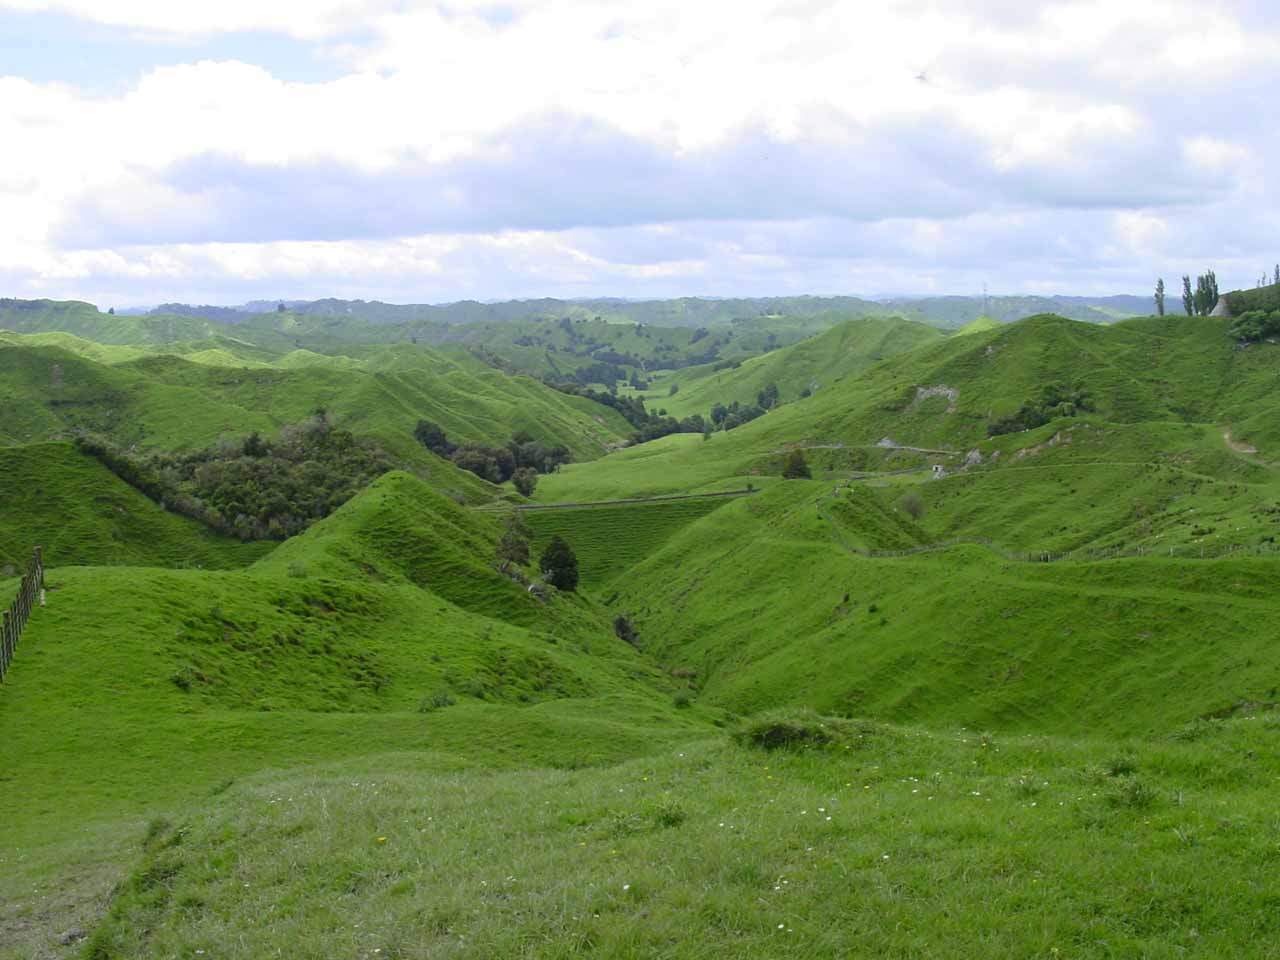 On one of the bad weather days, we drove the Forgotten World Highway where we checked out the greener pastures and rolling hills of King County on the way to Mt Taranaki